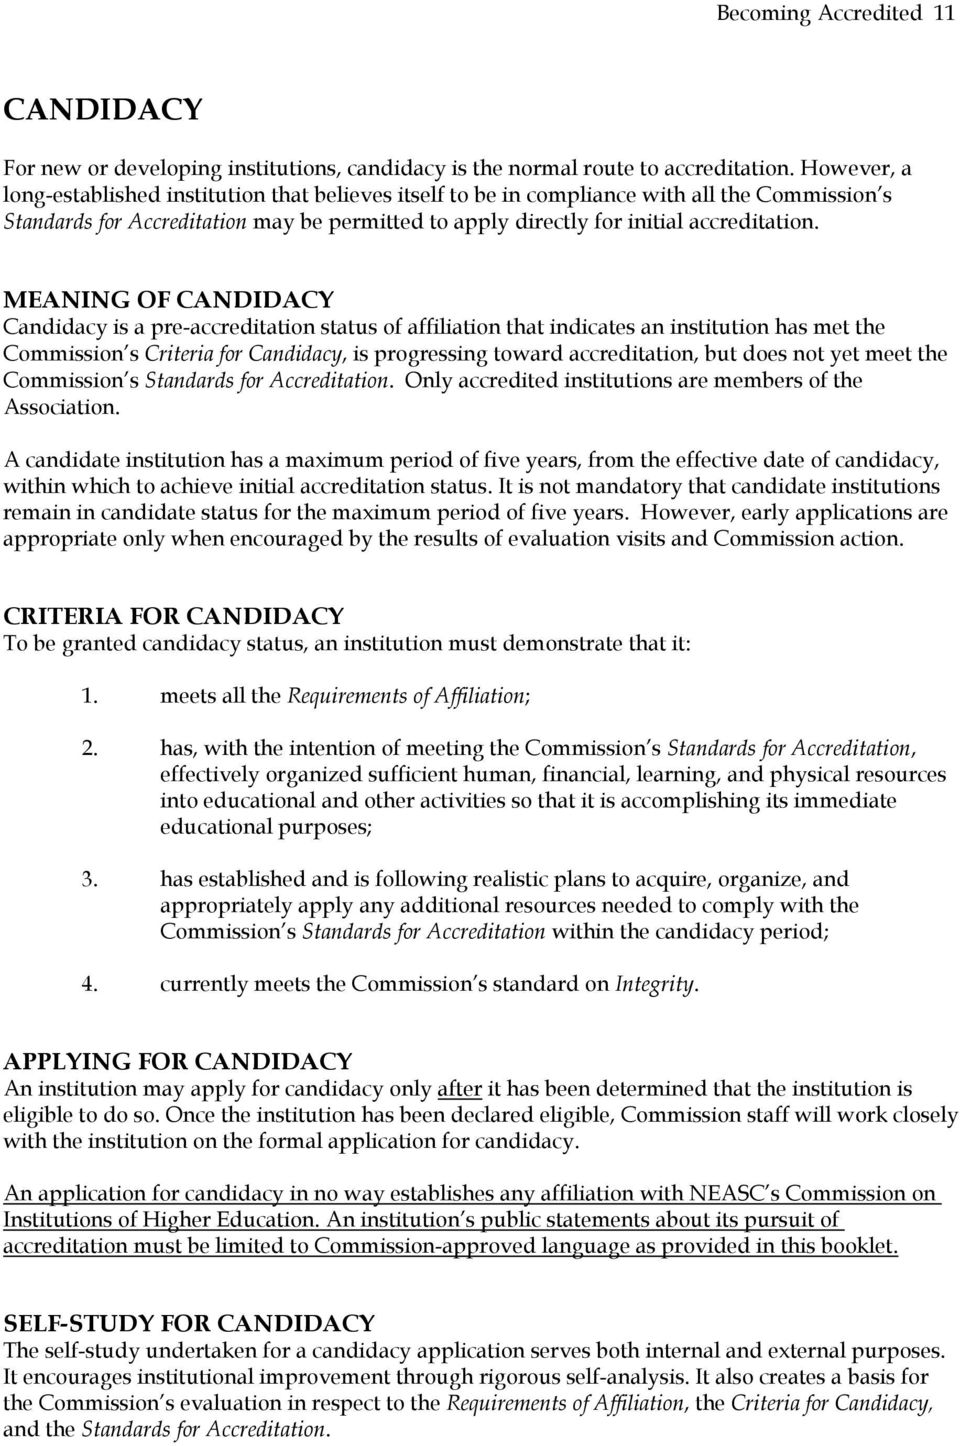 MEANING OF CANDIDACY Candidacy is a pre-accreditation status of affiliation that indicates an institution has met the Commission s Criteria for Candidacy, is progressing toward accreditation, but